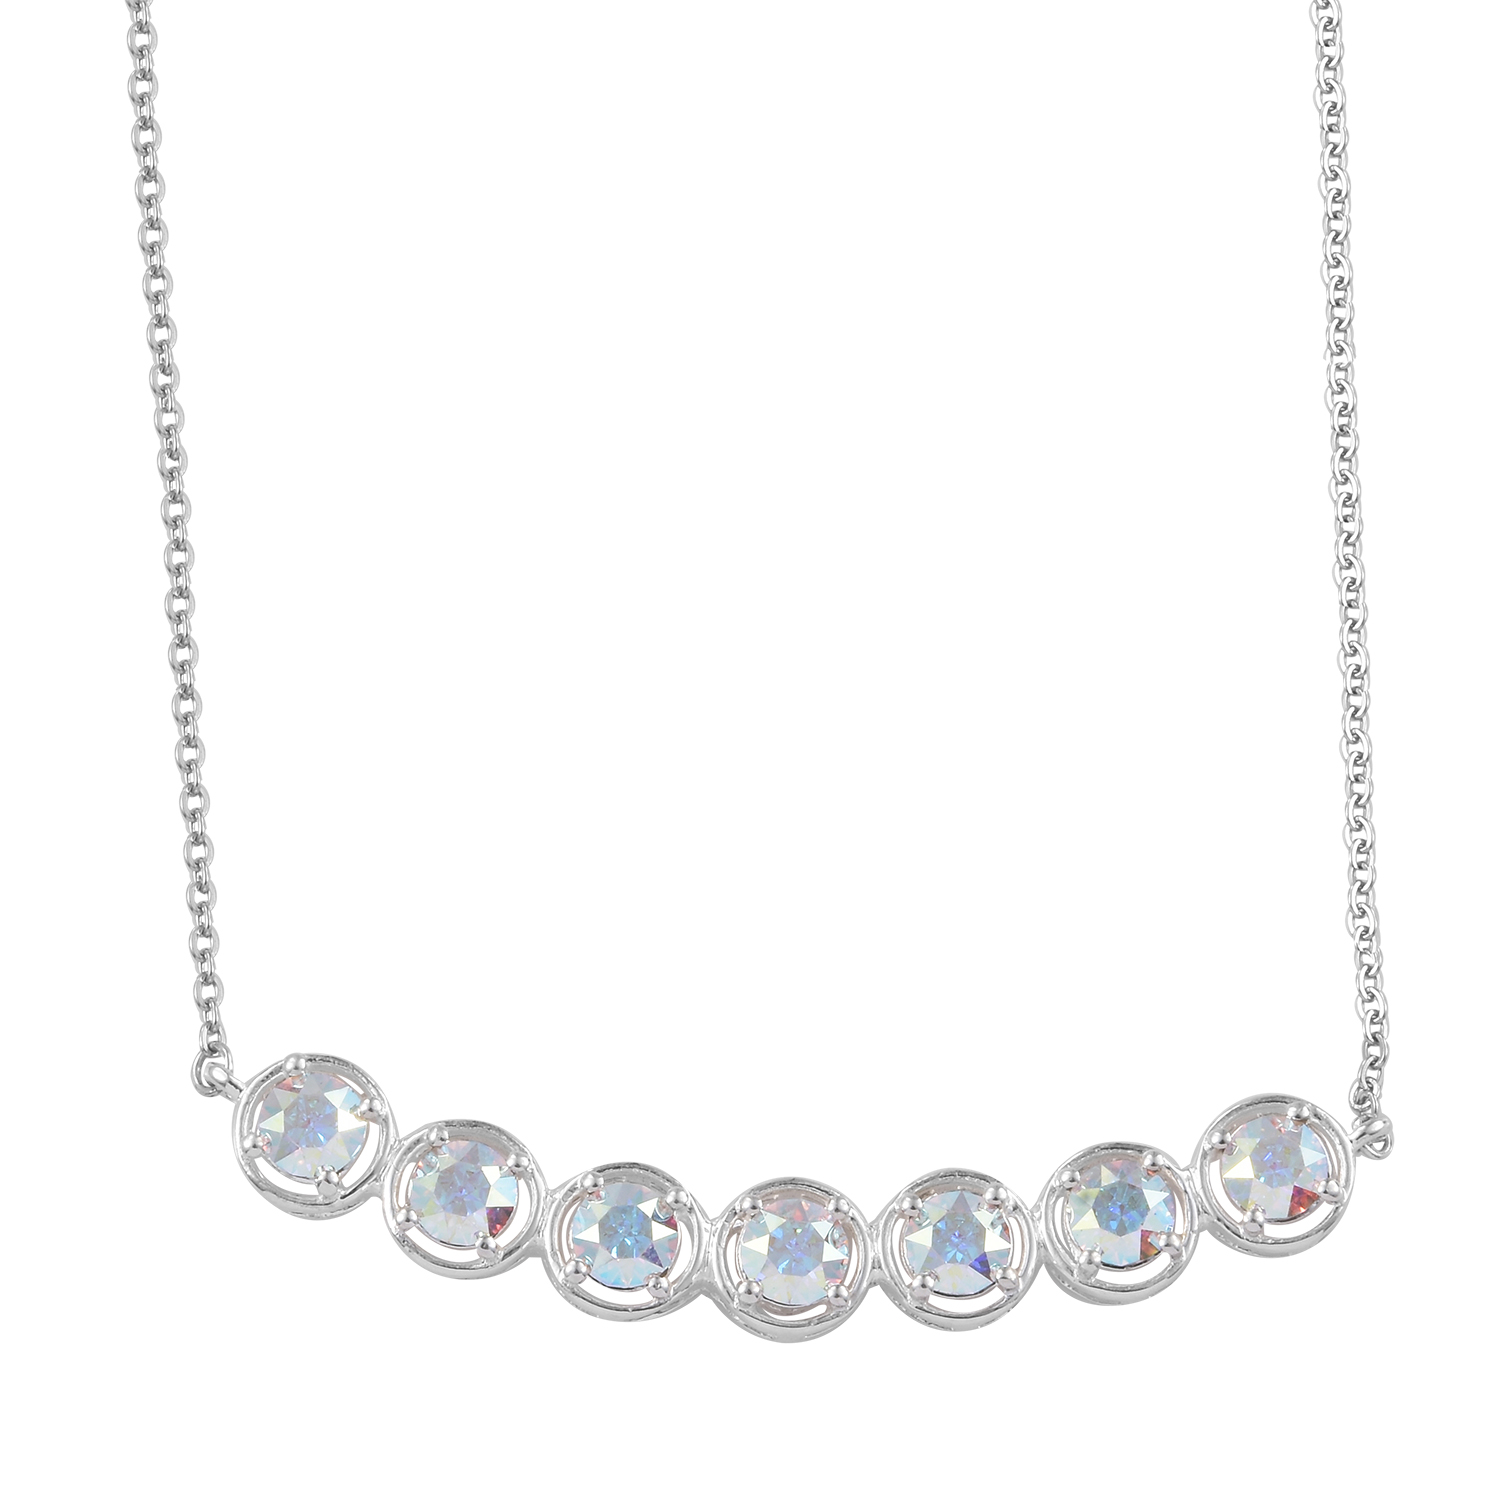 90e9f75ce Sterling Silver Necklace (18-20 in) Made with SWAROVSKI Aurora Borealis  Crystal